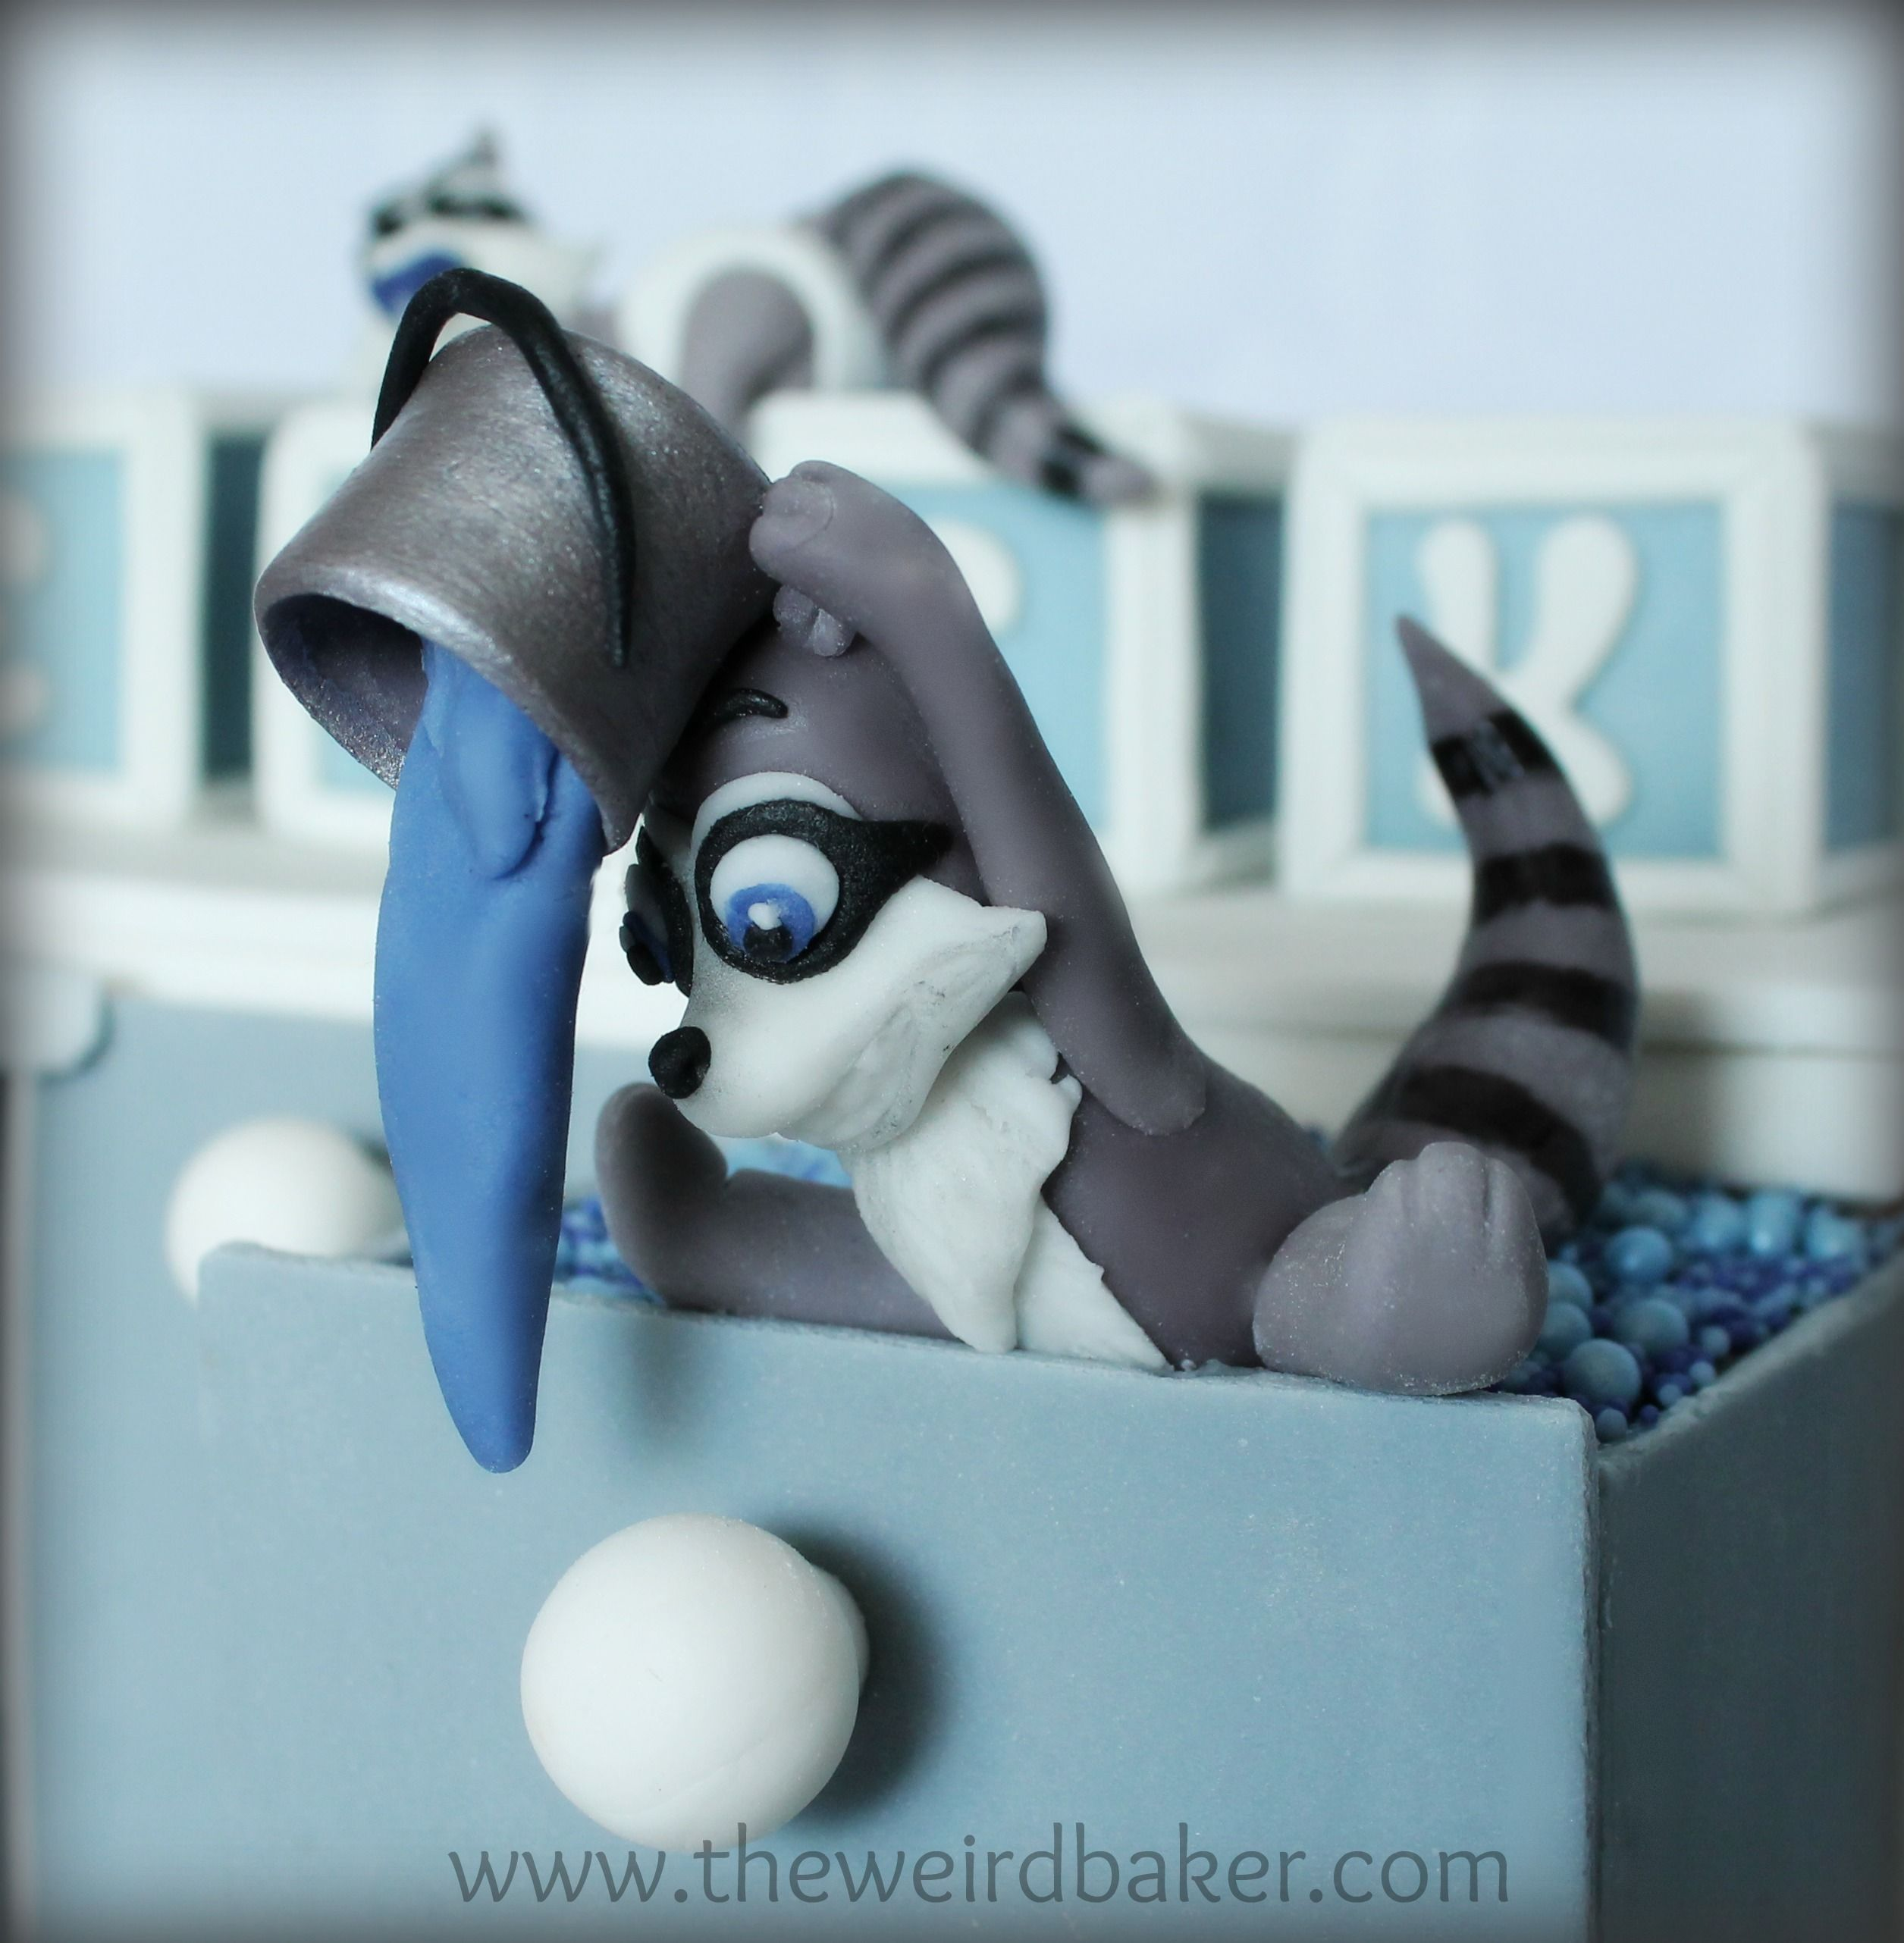 Fondant raccoon being naughty!